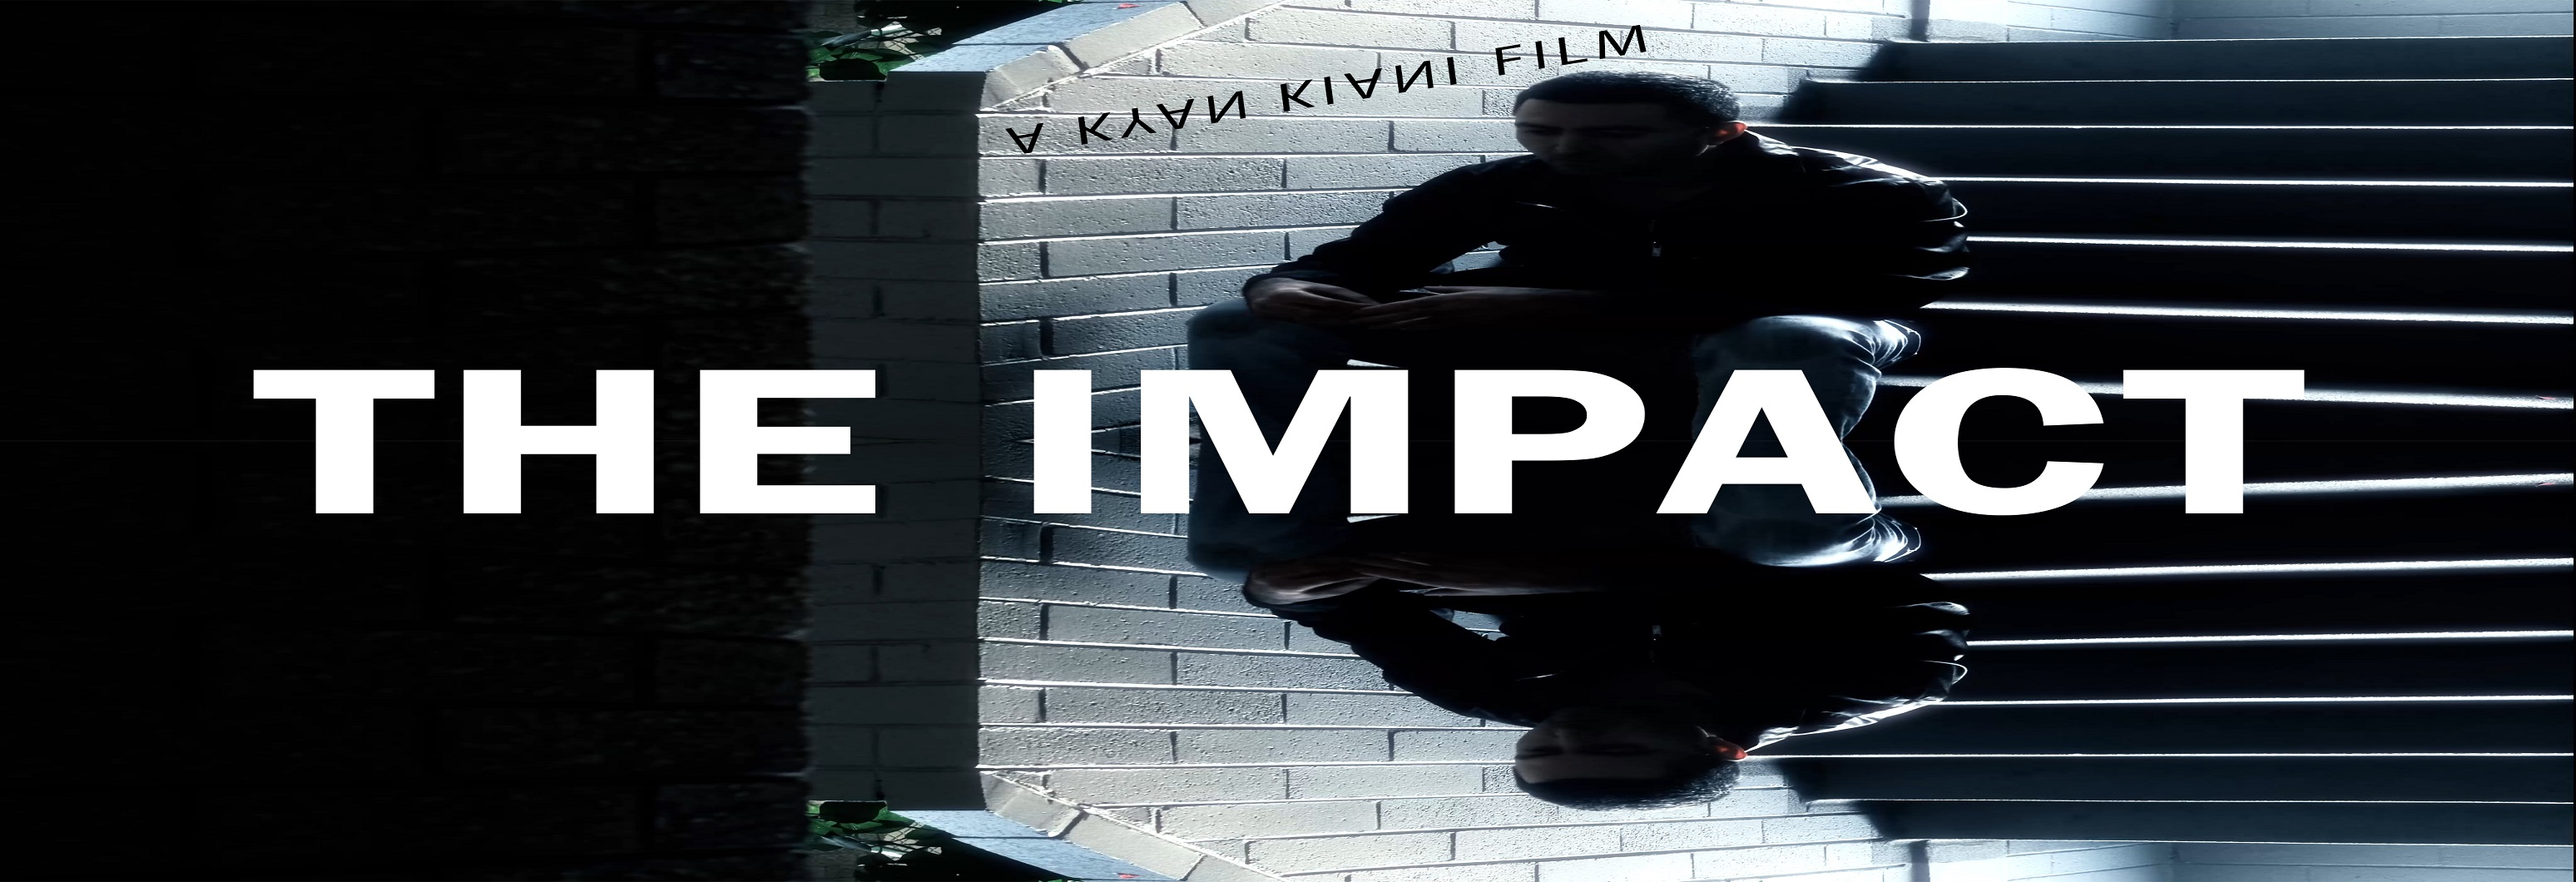 """""""The Impact"""" A Surreal Film by Kyan Kiani - My RODE Reel 2020"""